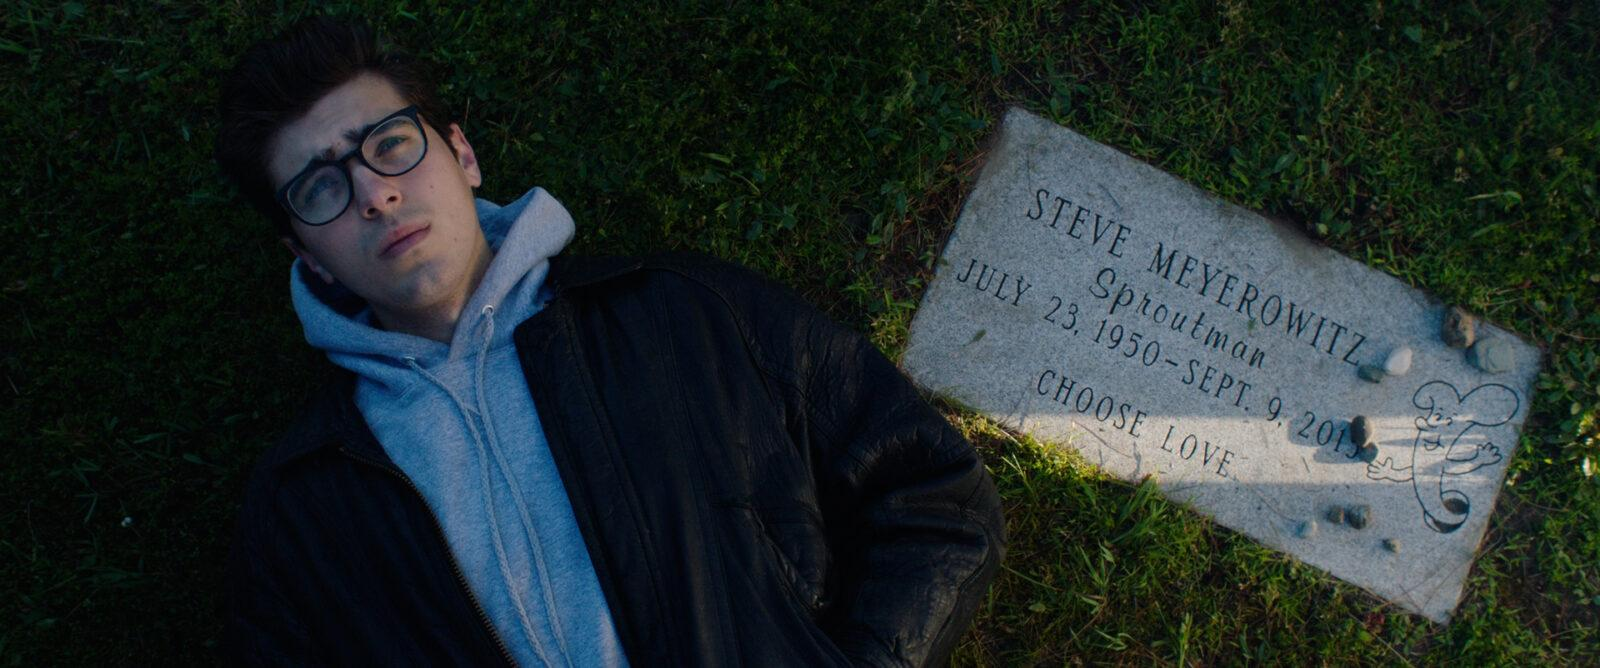 A man laying down next to a grave.